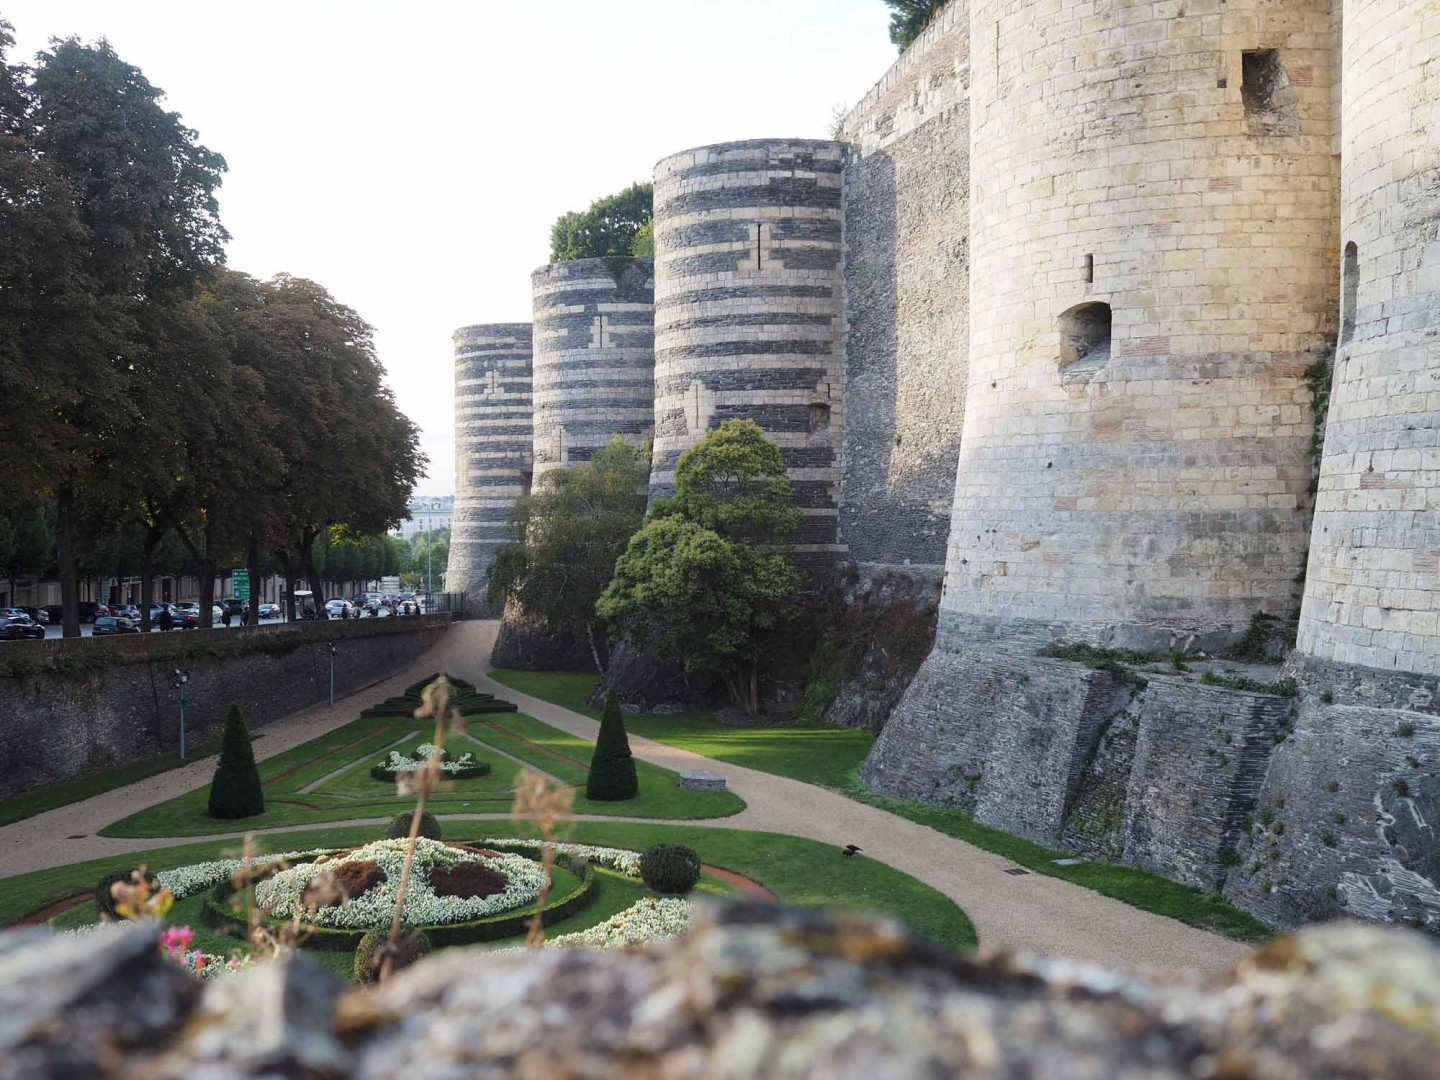 24h In Angers Visit Angers In 1 Day Urban Tourism